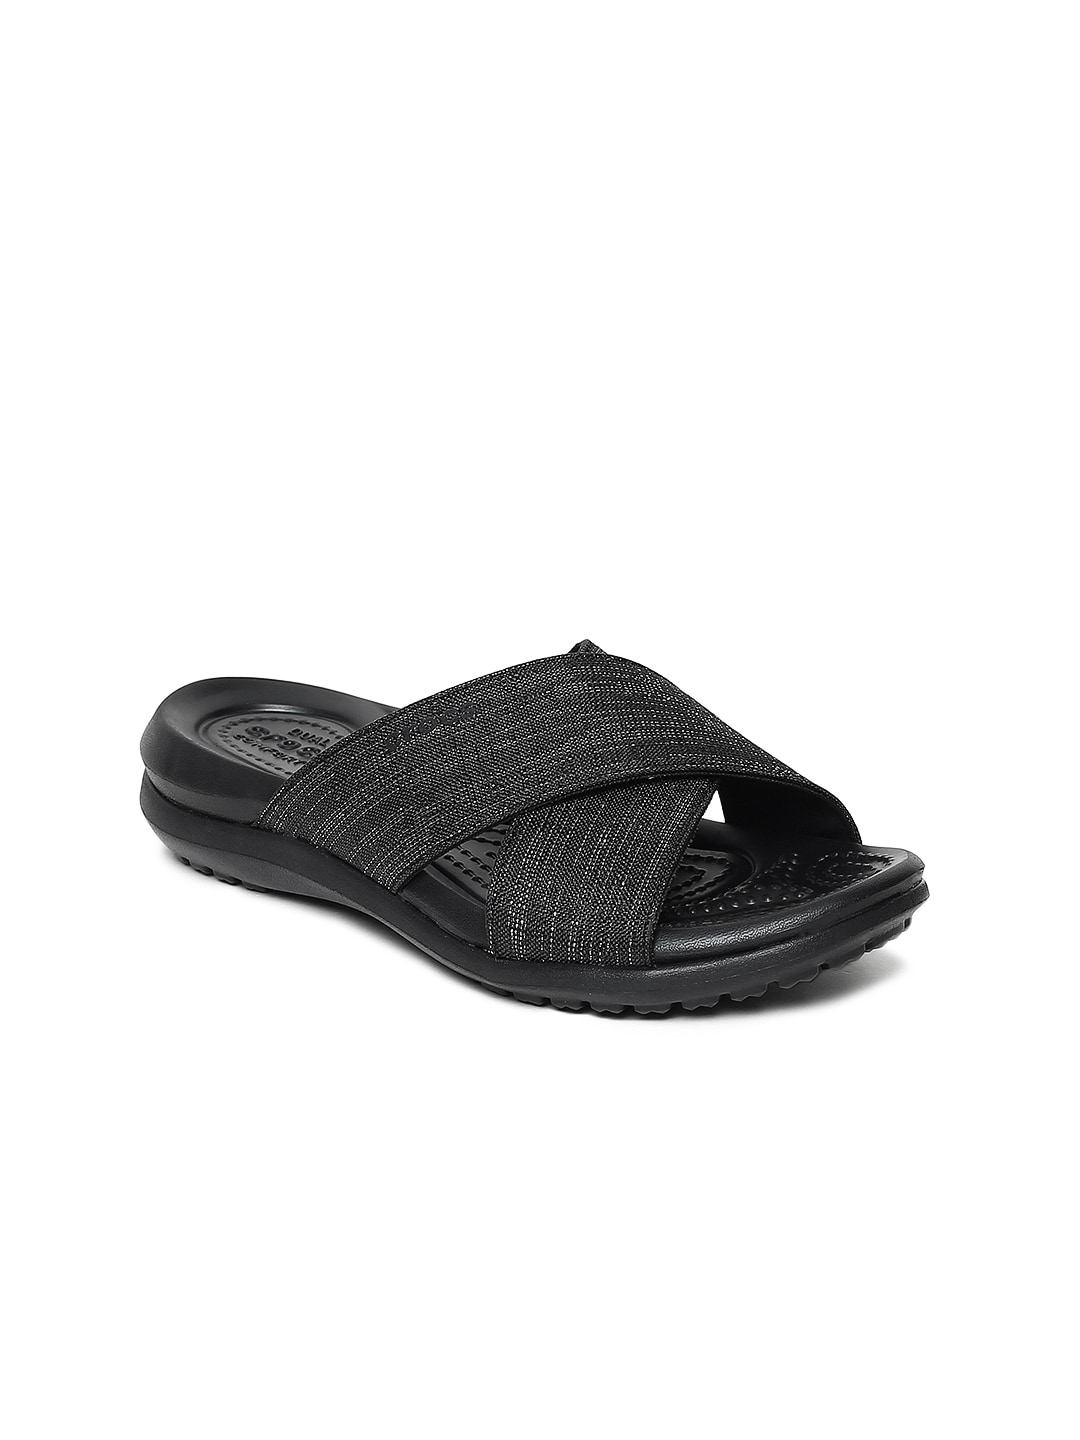 ef370c8b90b2ca Flats - Buy Womens Flats and Sandals Online in India